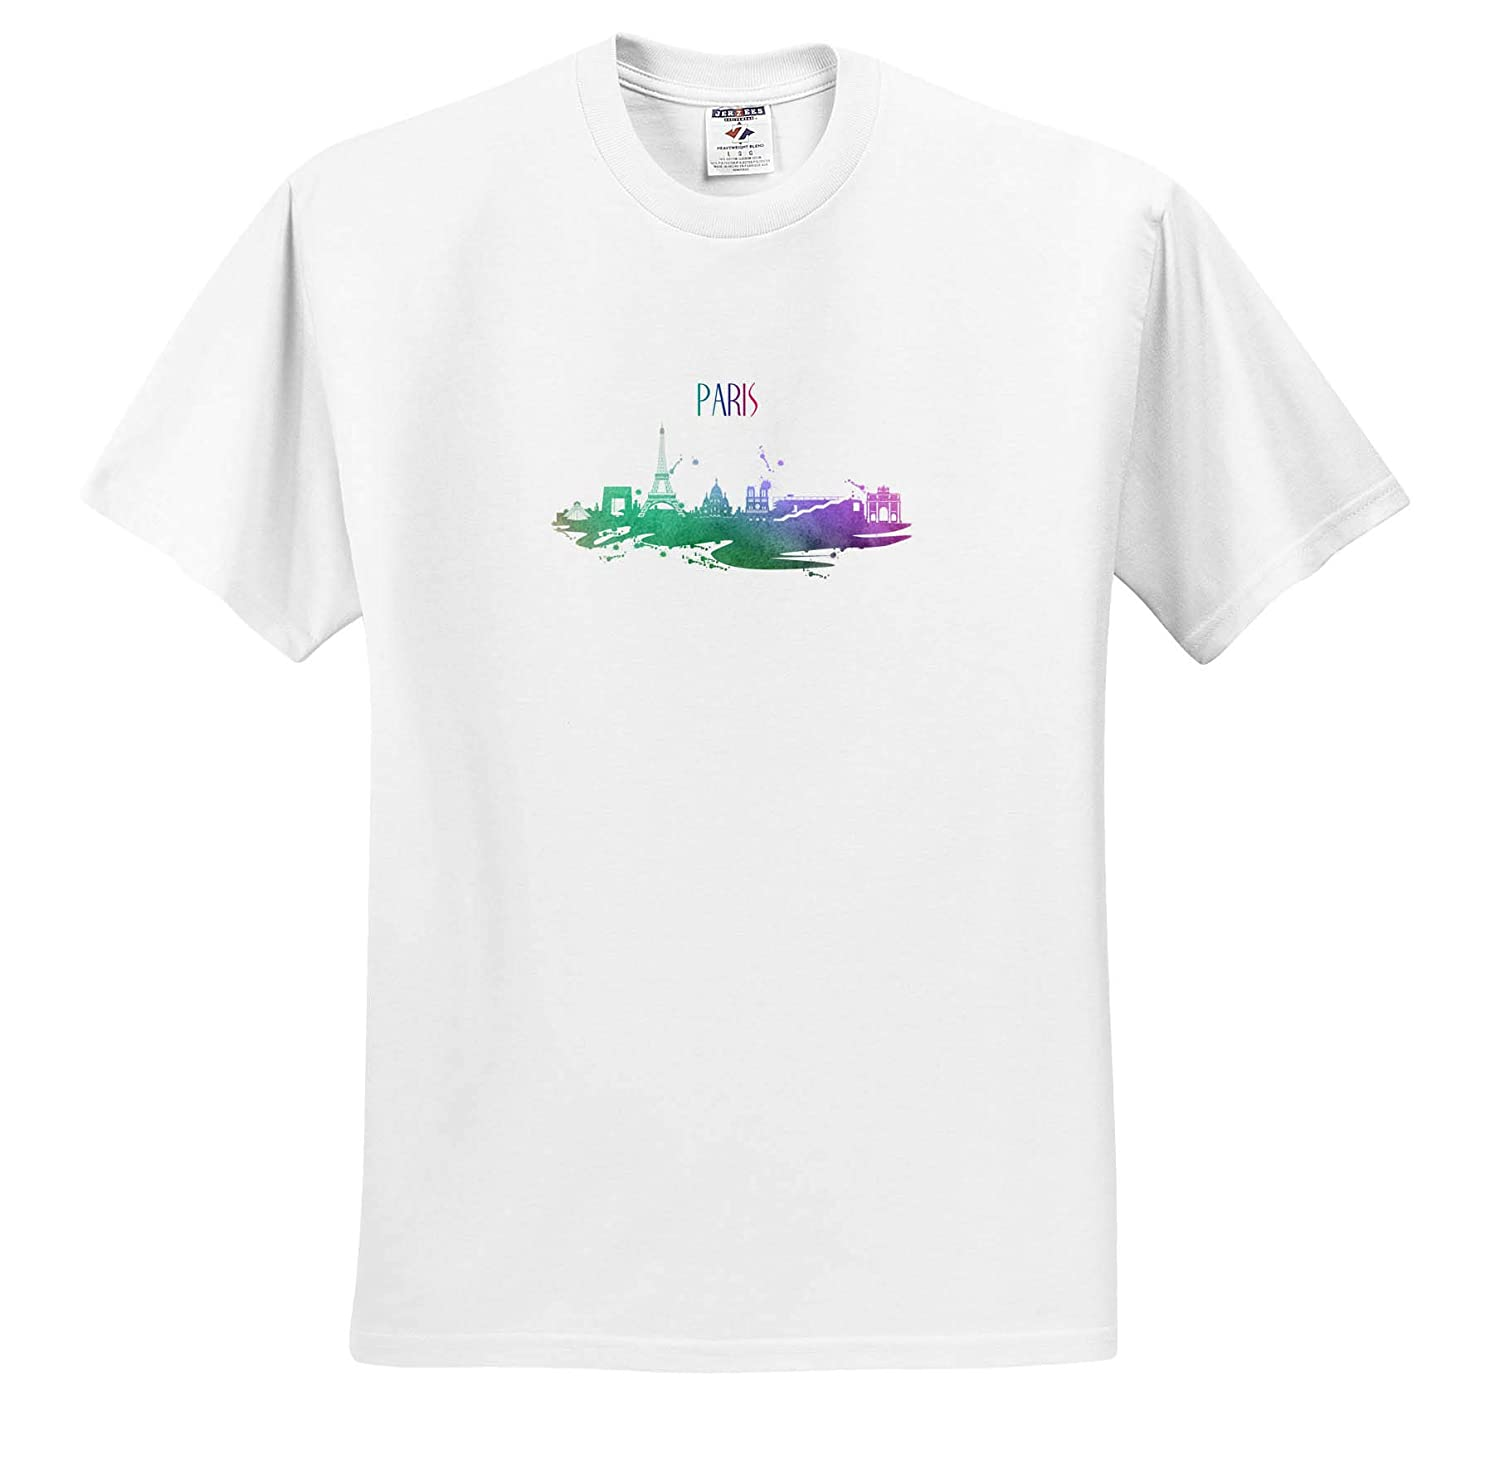 3dRose Sven Herkenrath City Adult T-Shirt XL Paris France Skyline with Watercolor Style Europe ts/_311008